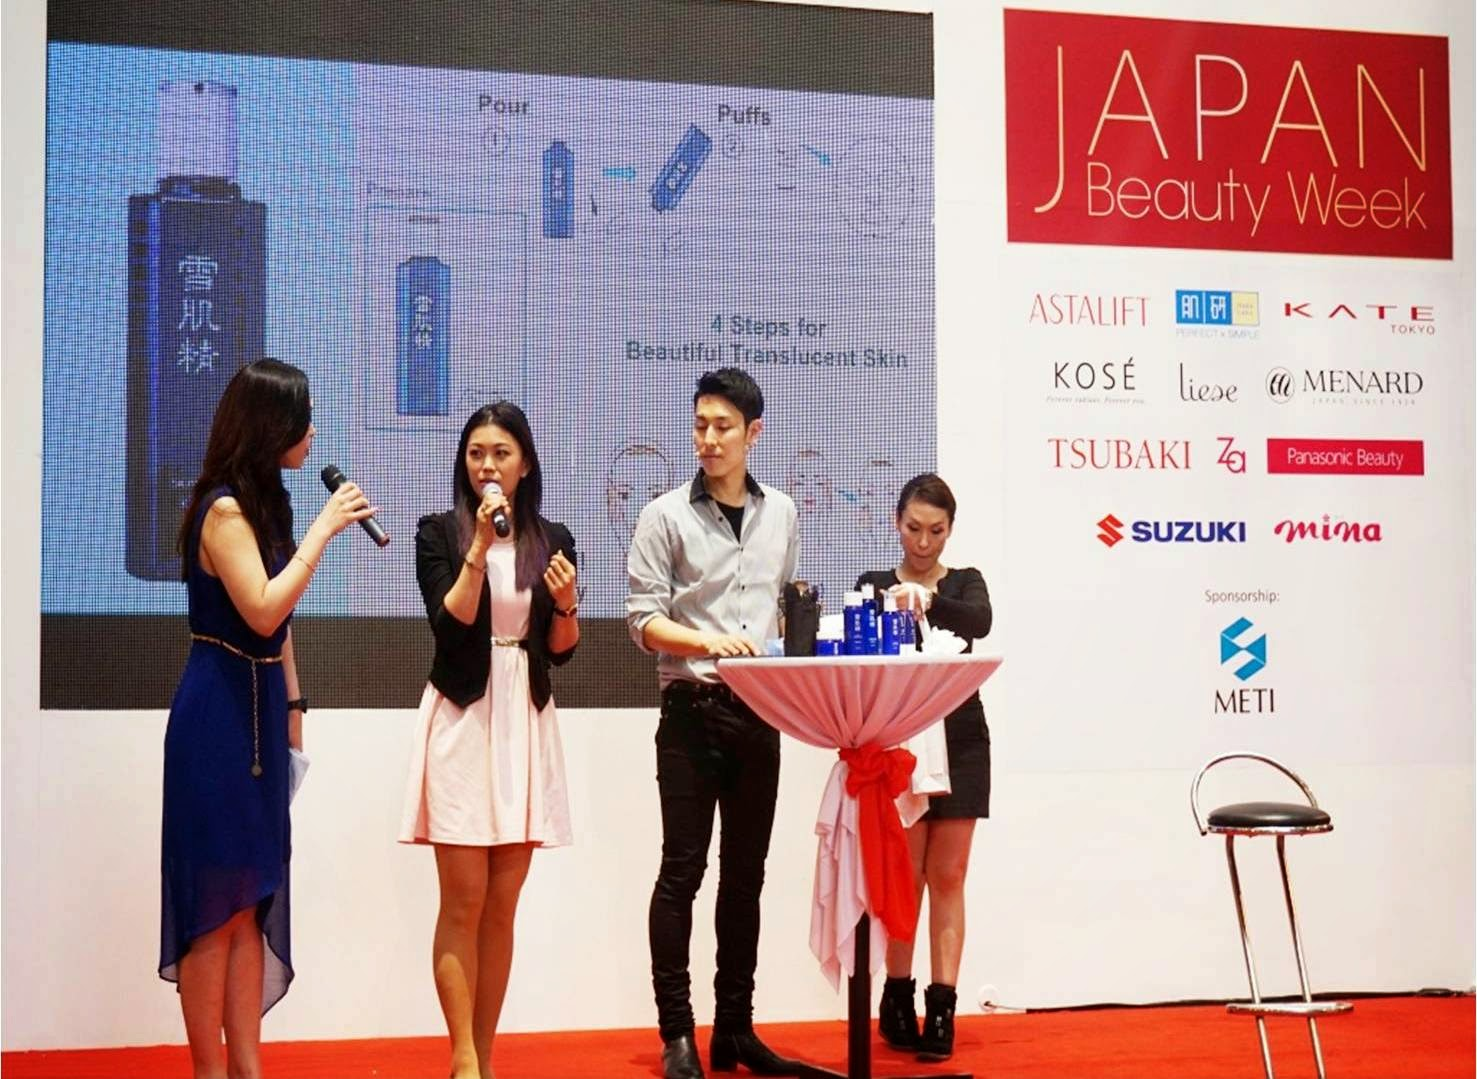 Japan Beauty Week, on stage sharing, presentation, demo, sunshine kelly, beauty tips, beauty blogger, kose, sekkisei lotion mask, dobashi, kose sekkisei